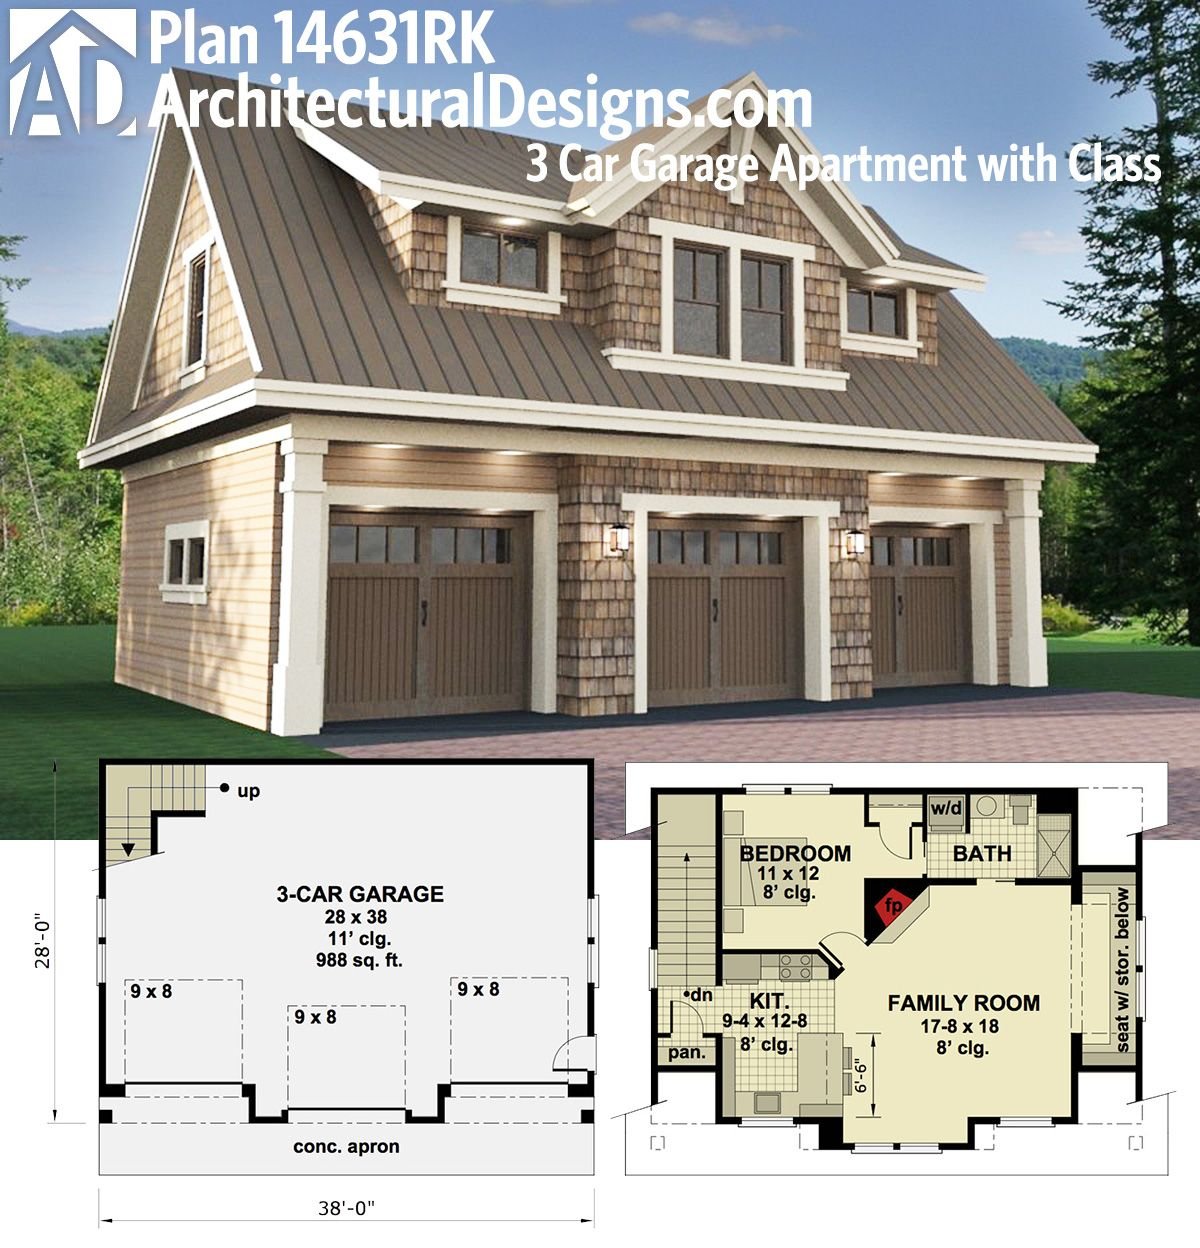 Plan 14631rk 3 car garage apartment with class carriage for 2 car garage house plans